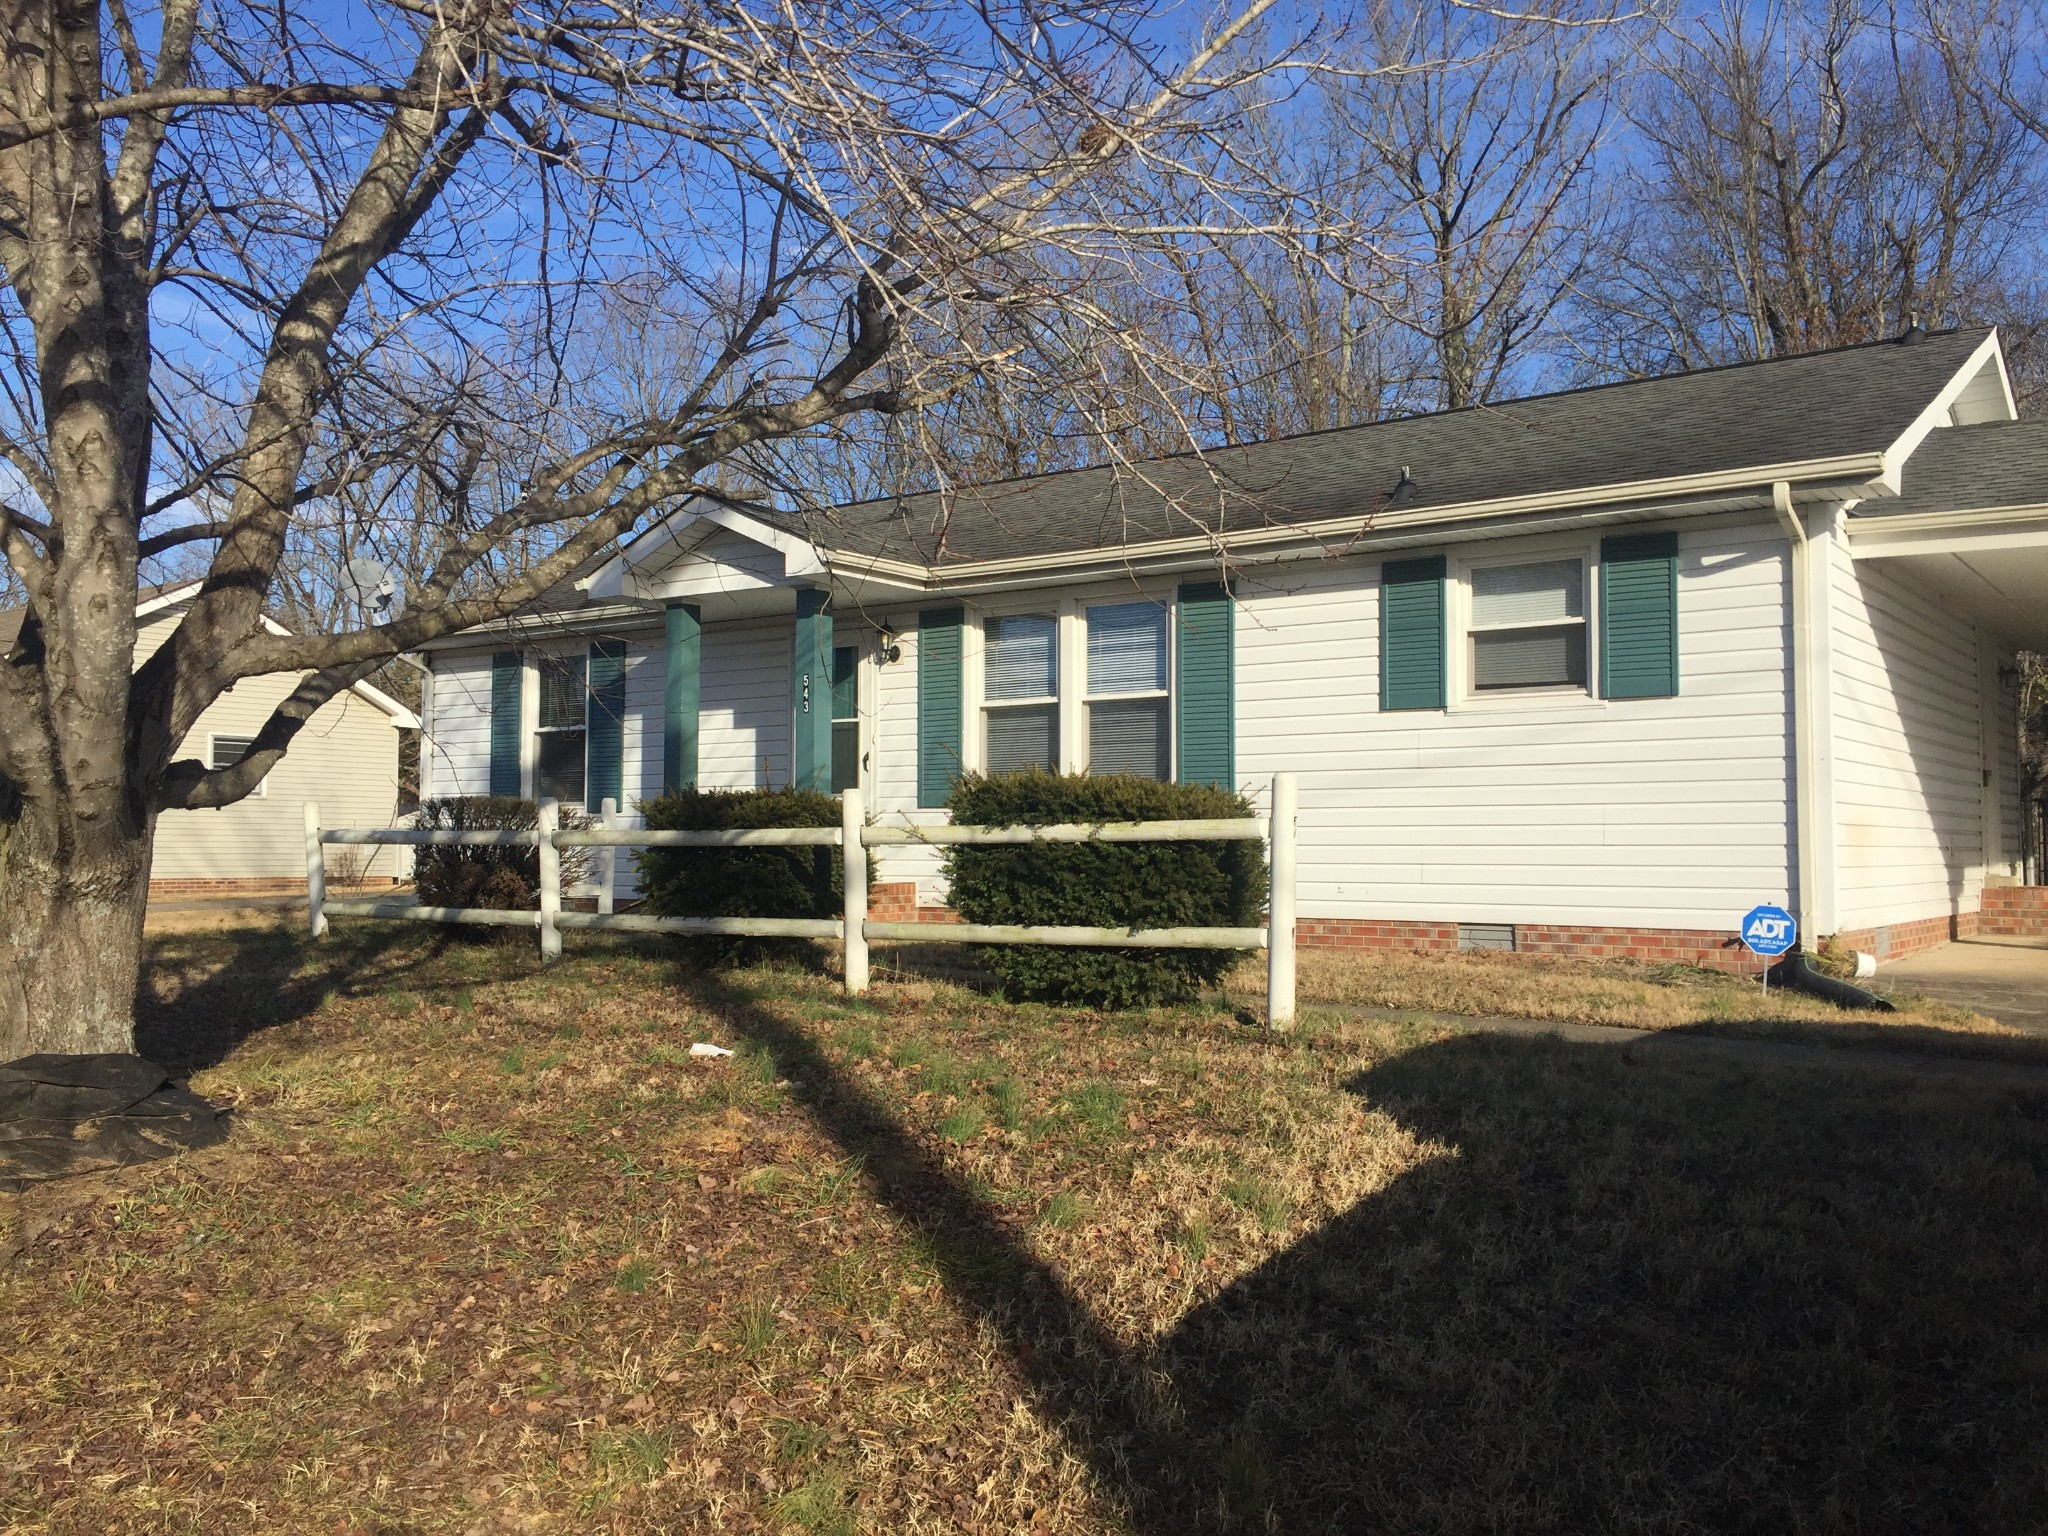 543 Donna Dr Property Photo - Clarksville, TN real estate listing